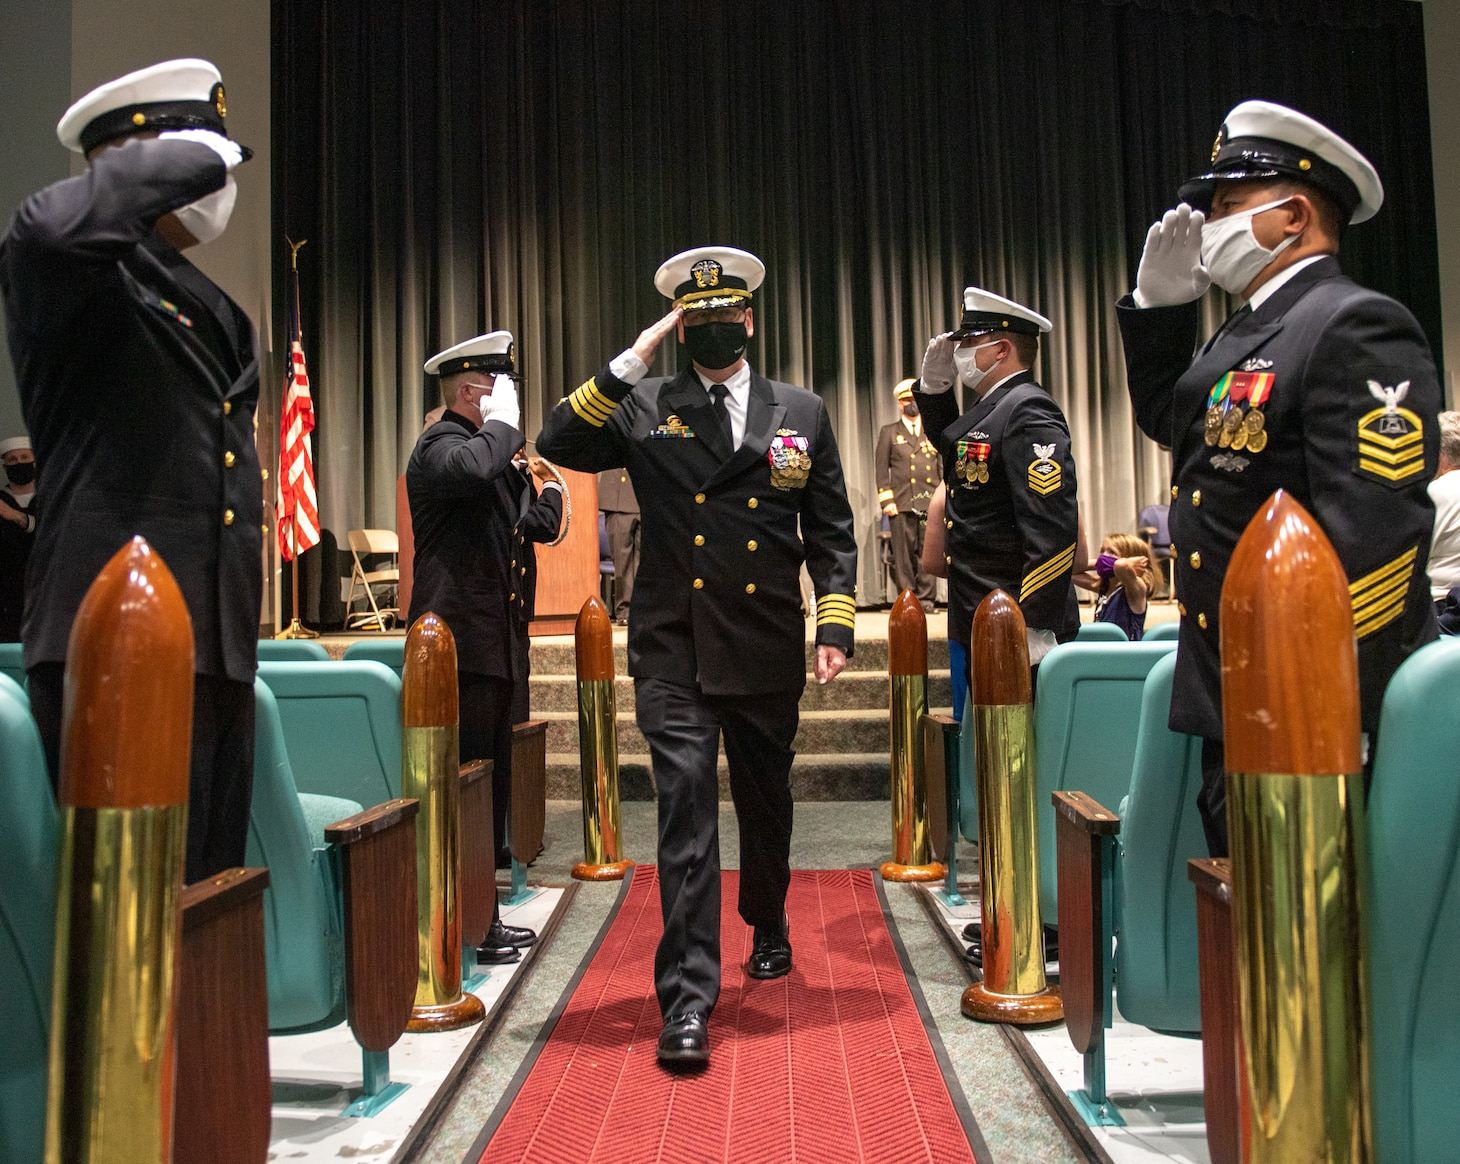 Capt. John Cage, commander, Submarine Squadron 20, is saluted by sideboys during a change of command ceremony held at Naval Undersea Museum in Keyport, Washington Sept. 9, 2021. During the ceremony, Cmdr. Travis Wood relieved Cmdr. Robert Garis as commanding officer of USS Maine (SSBN 741) Gold Crew. (U.S. Navy Photo by Mass Communication Specialist 2nd Class Emilia C. Hilliard)